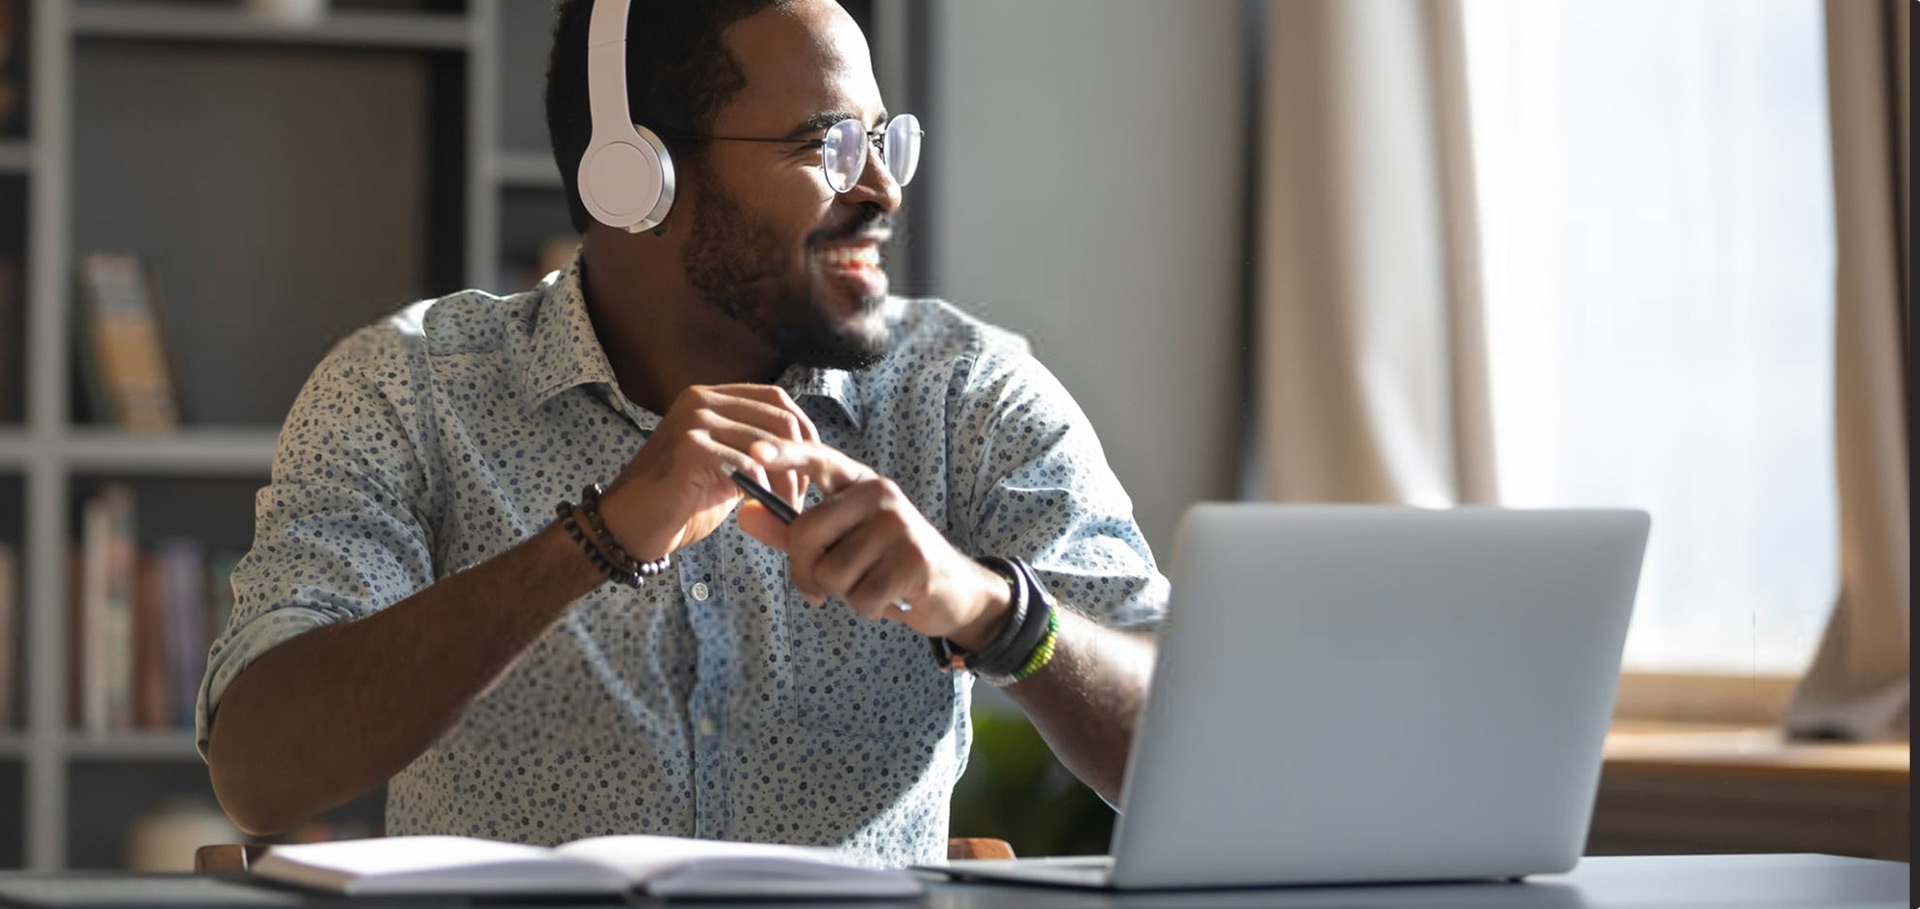 Young man with headphones looks off in the distance with a smile, sitting in front of a computer.